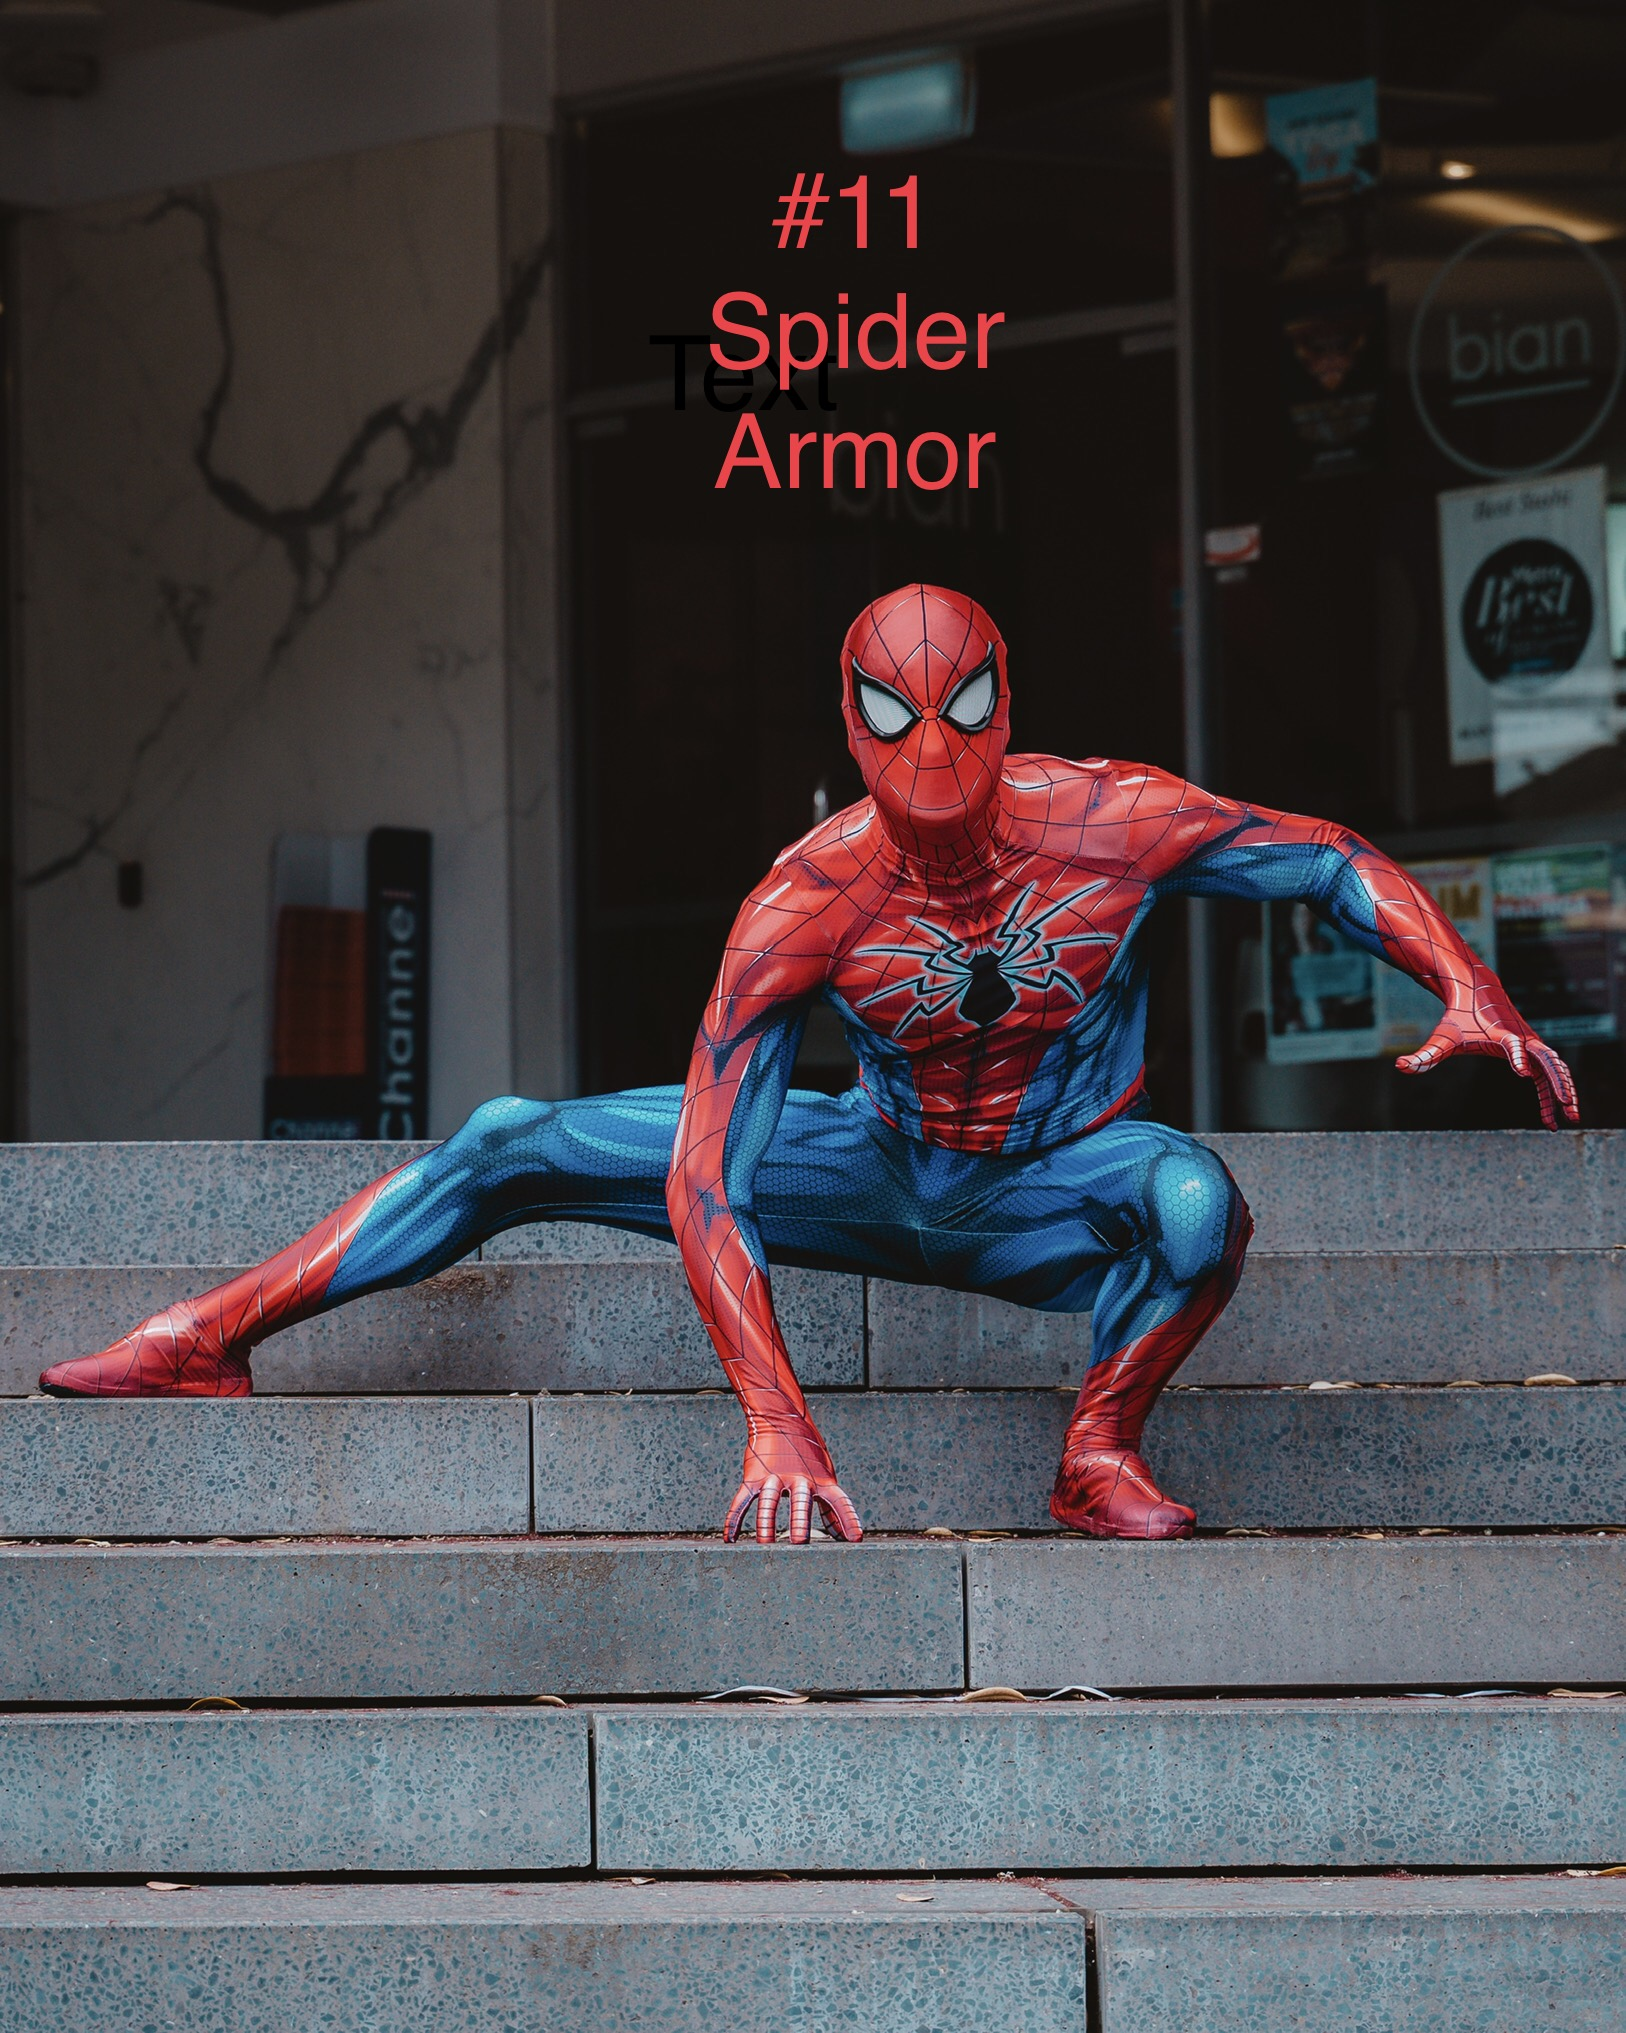 Spiderman - Spider Armor